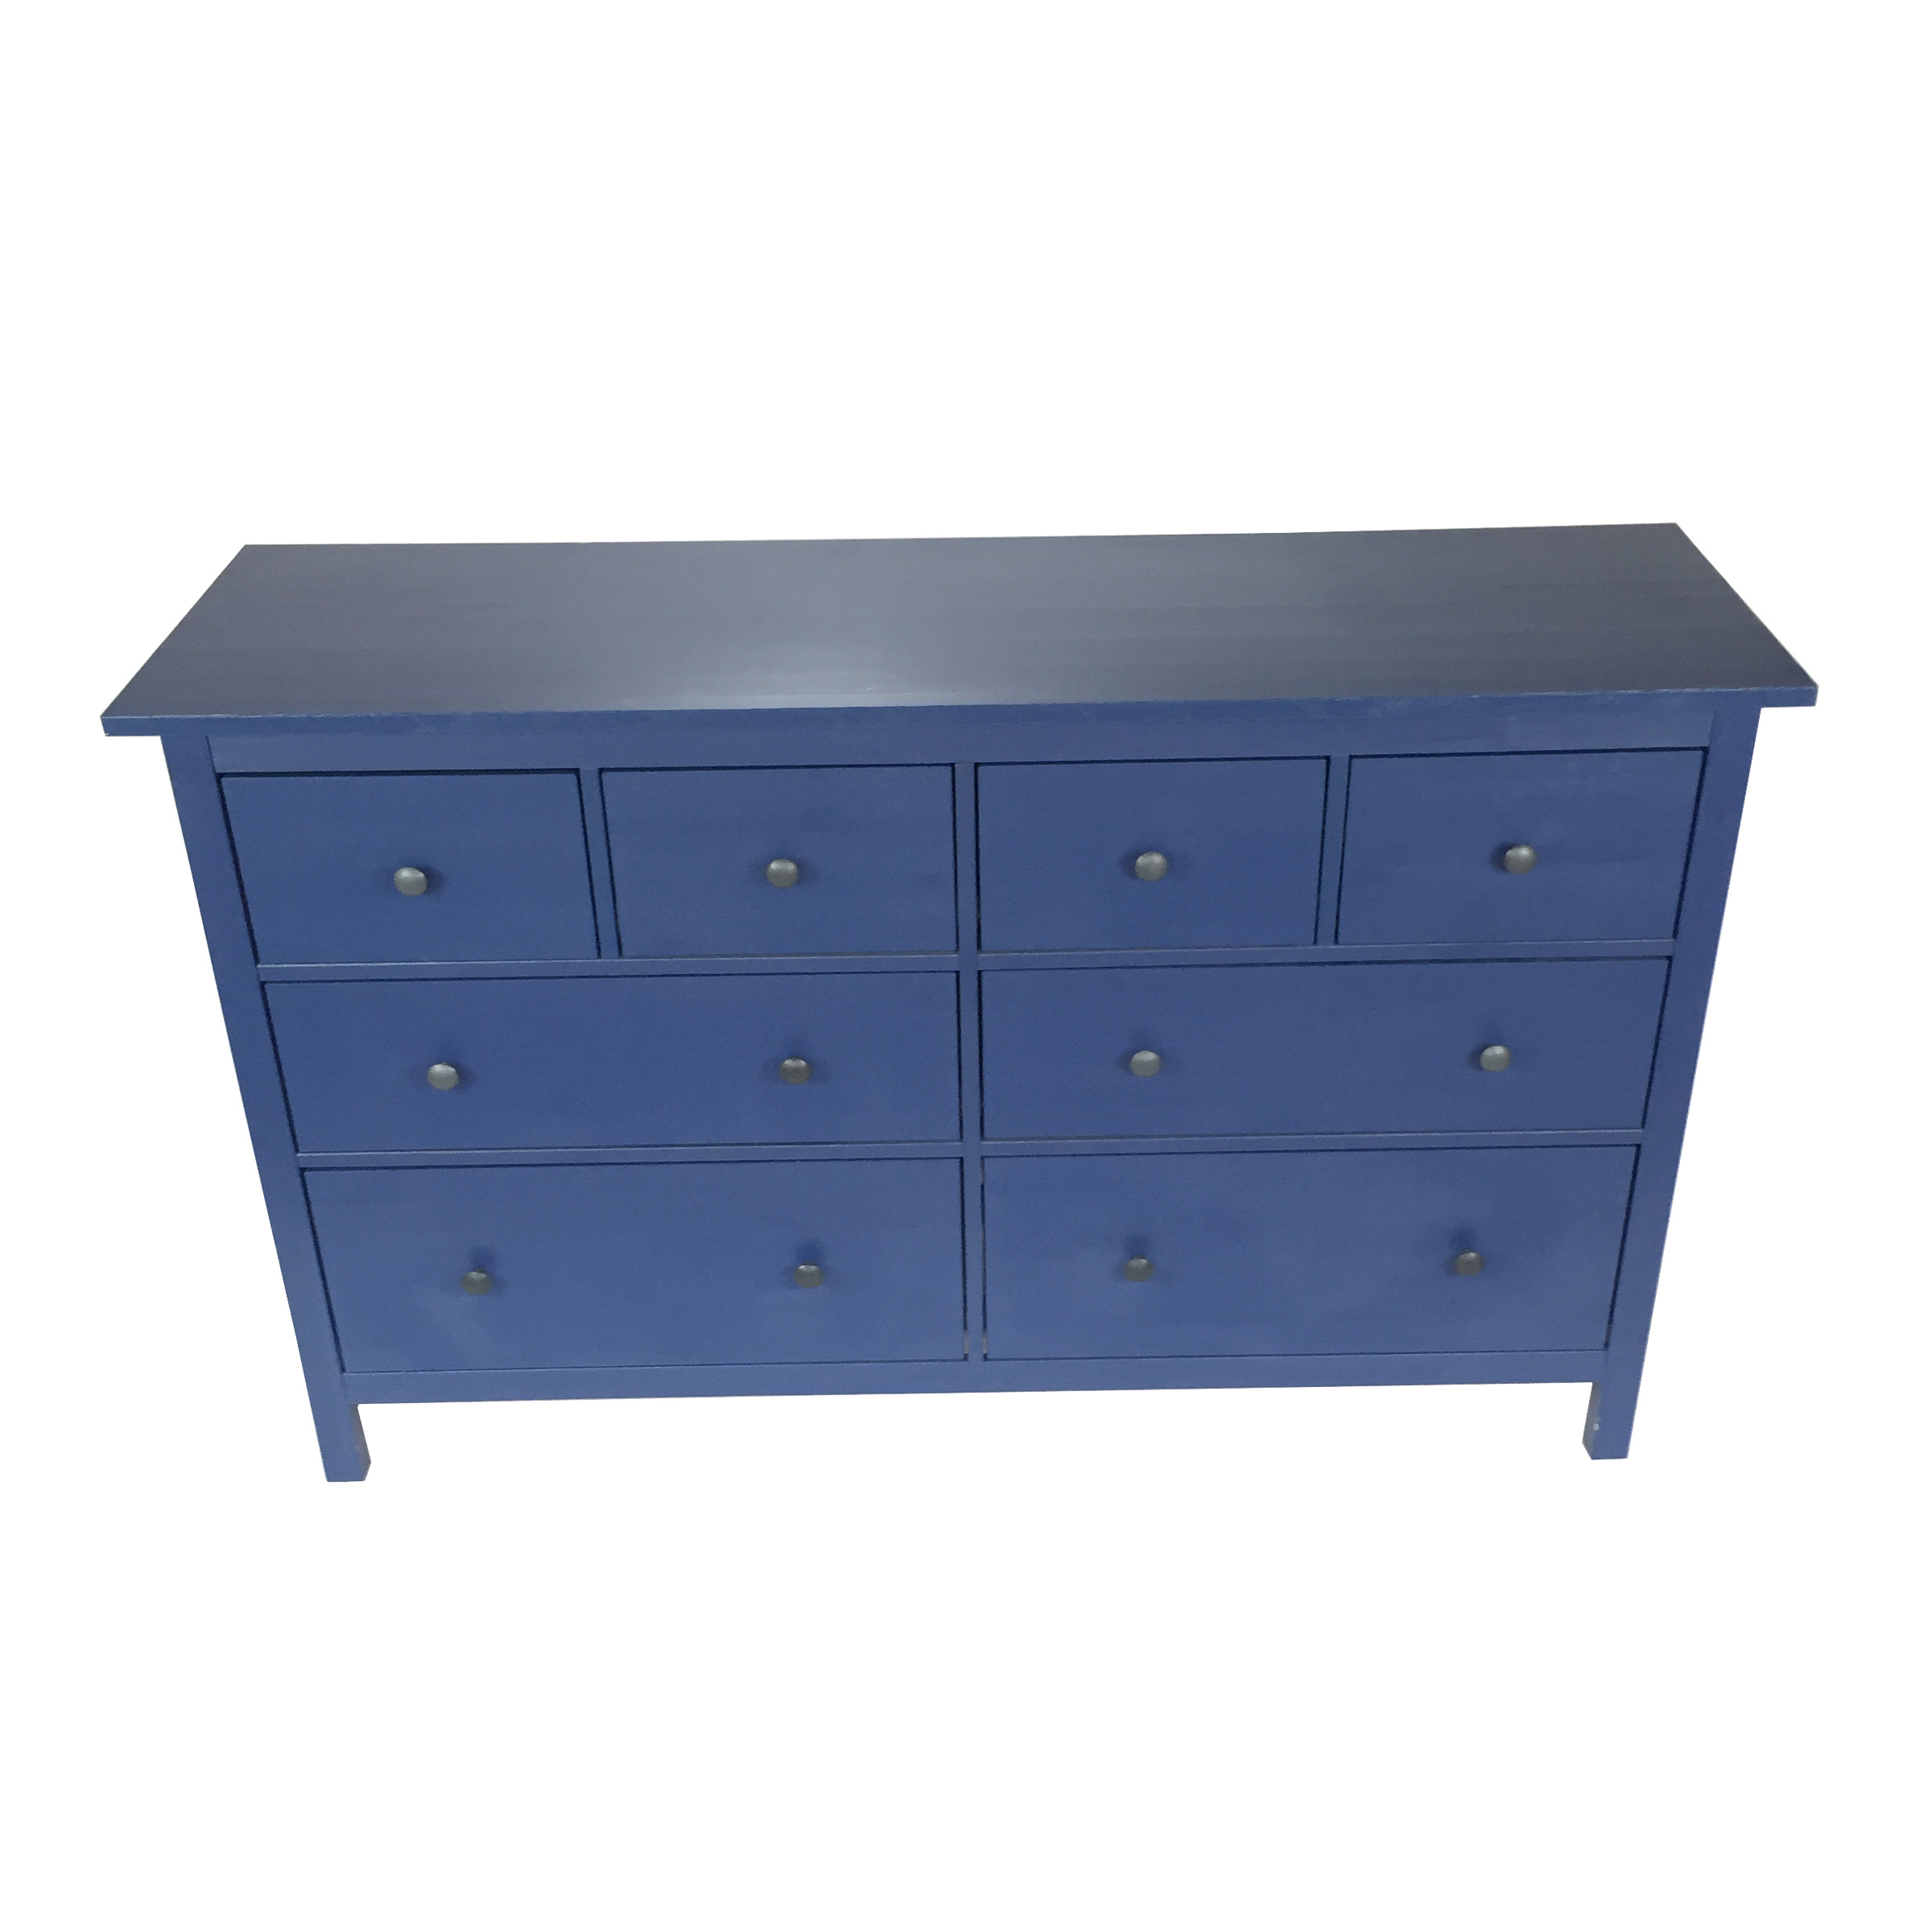 58 off ikea blue hemnes dresser storage. Black Bedroom Furniture Sets. Home Design Ideas